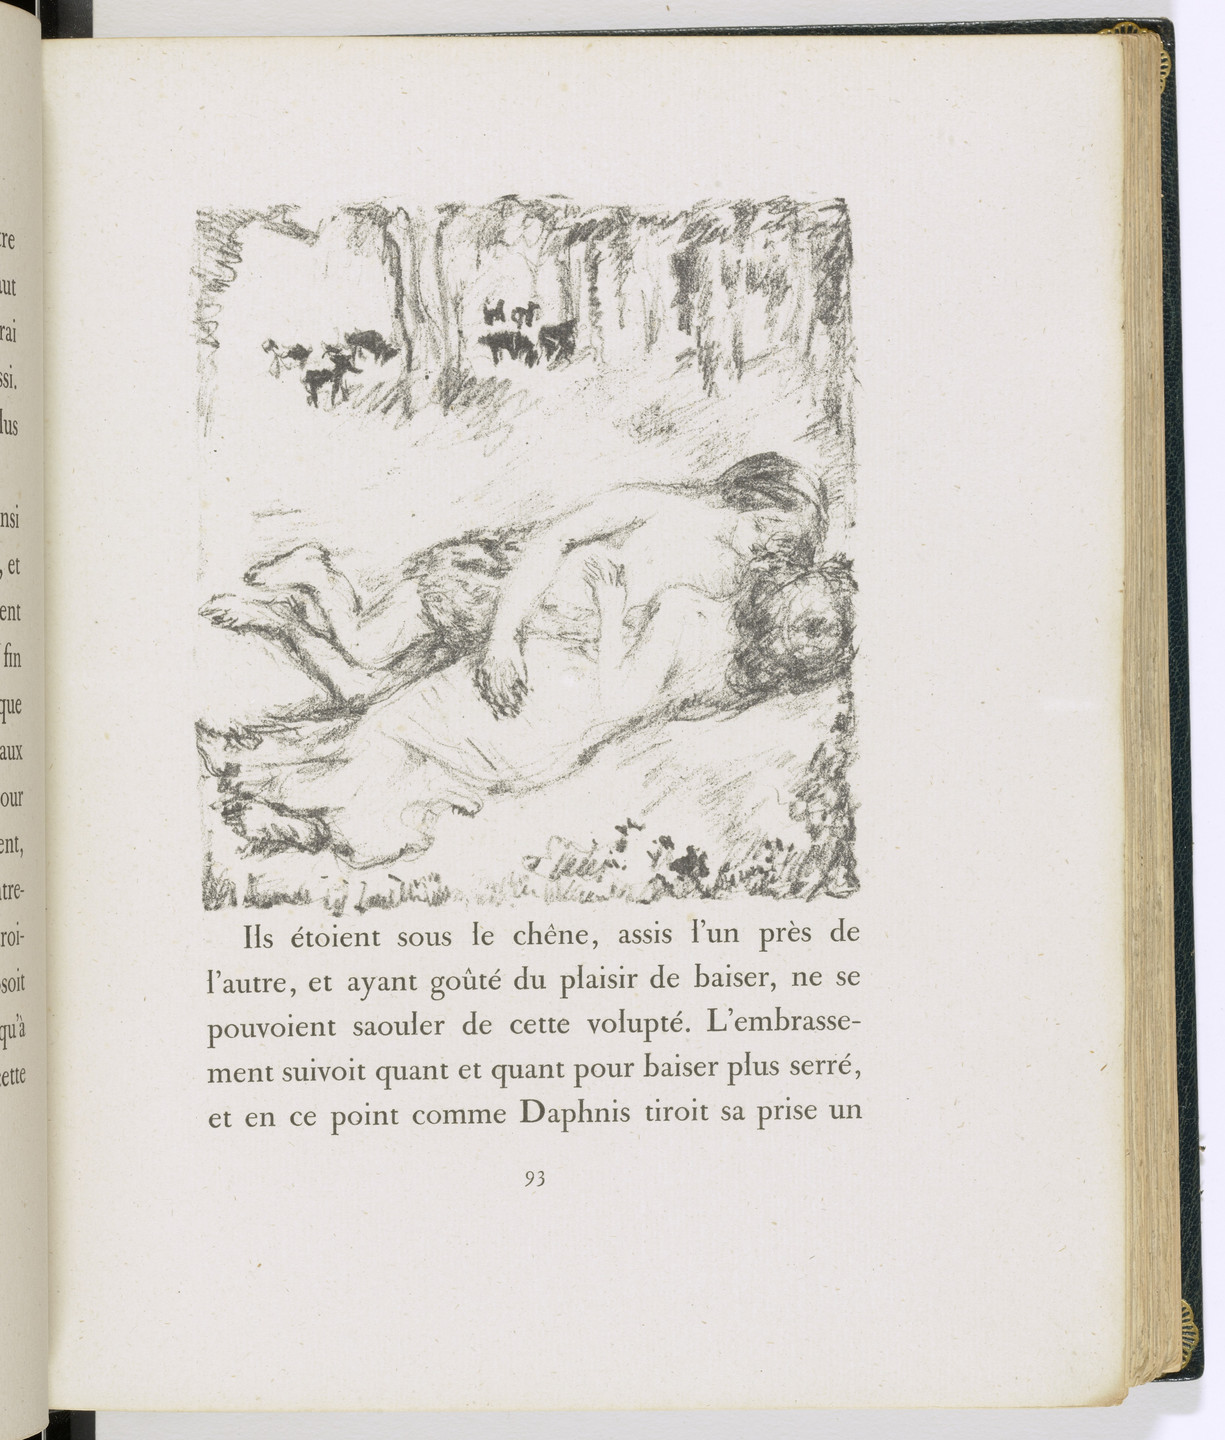 Pierre Bonnard. In-text plate (page 93) from Daphnis et Chloé. 1902